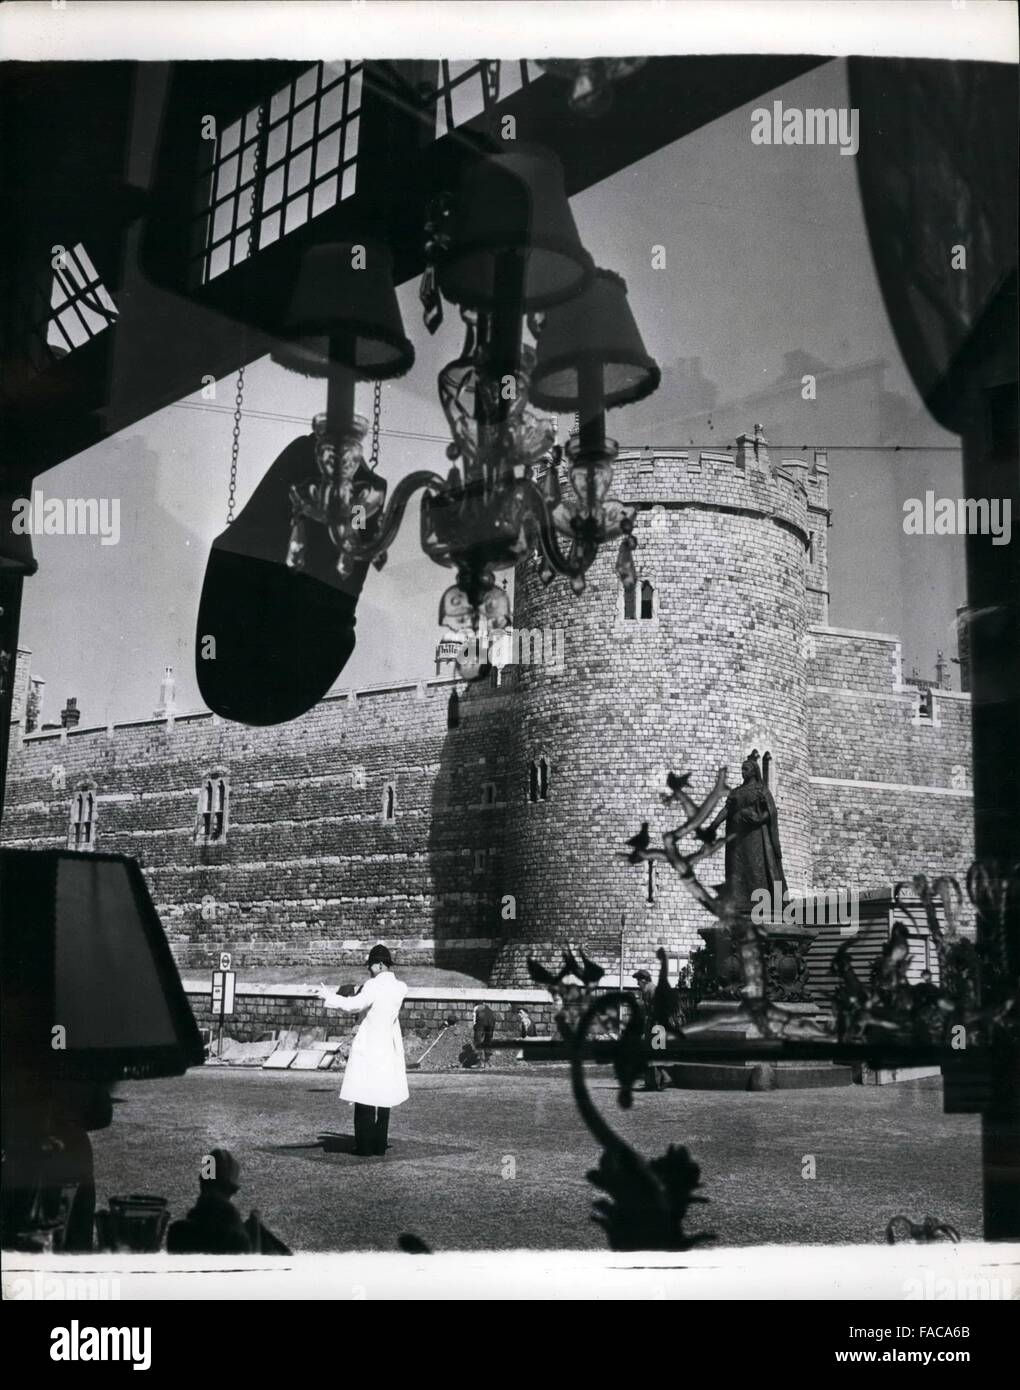 1952 - An unusual view of Windsor Castle and the statue of Queen Victoria taken through the window of a gift shop Stock Photo